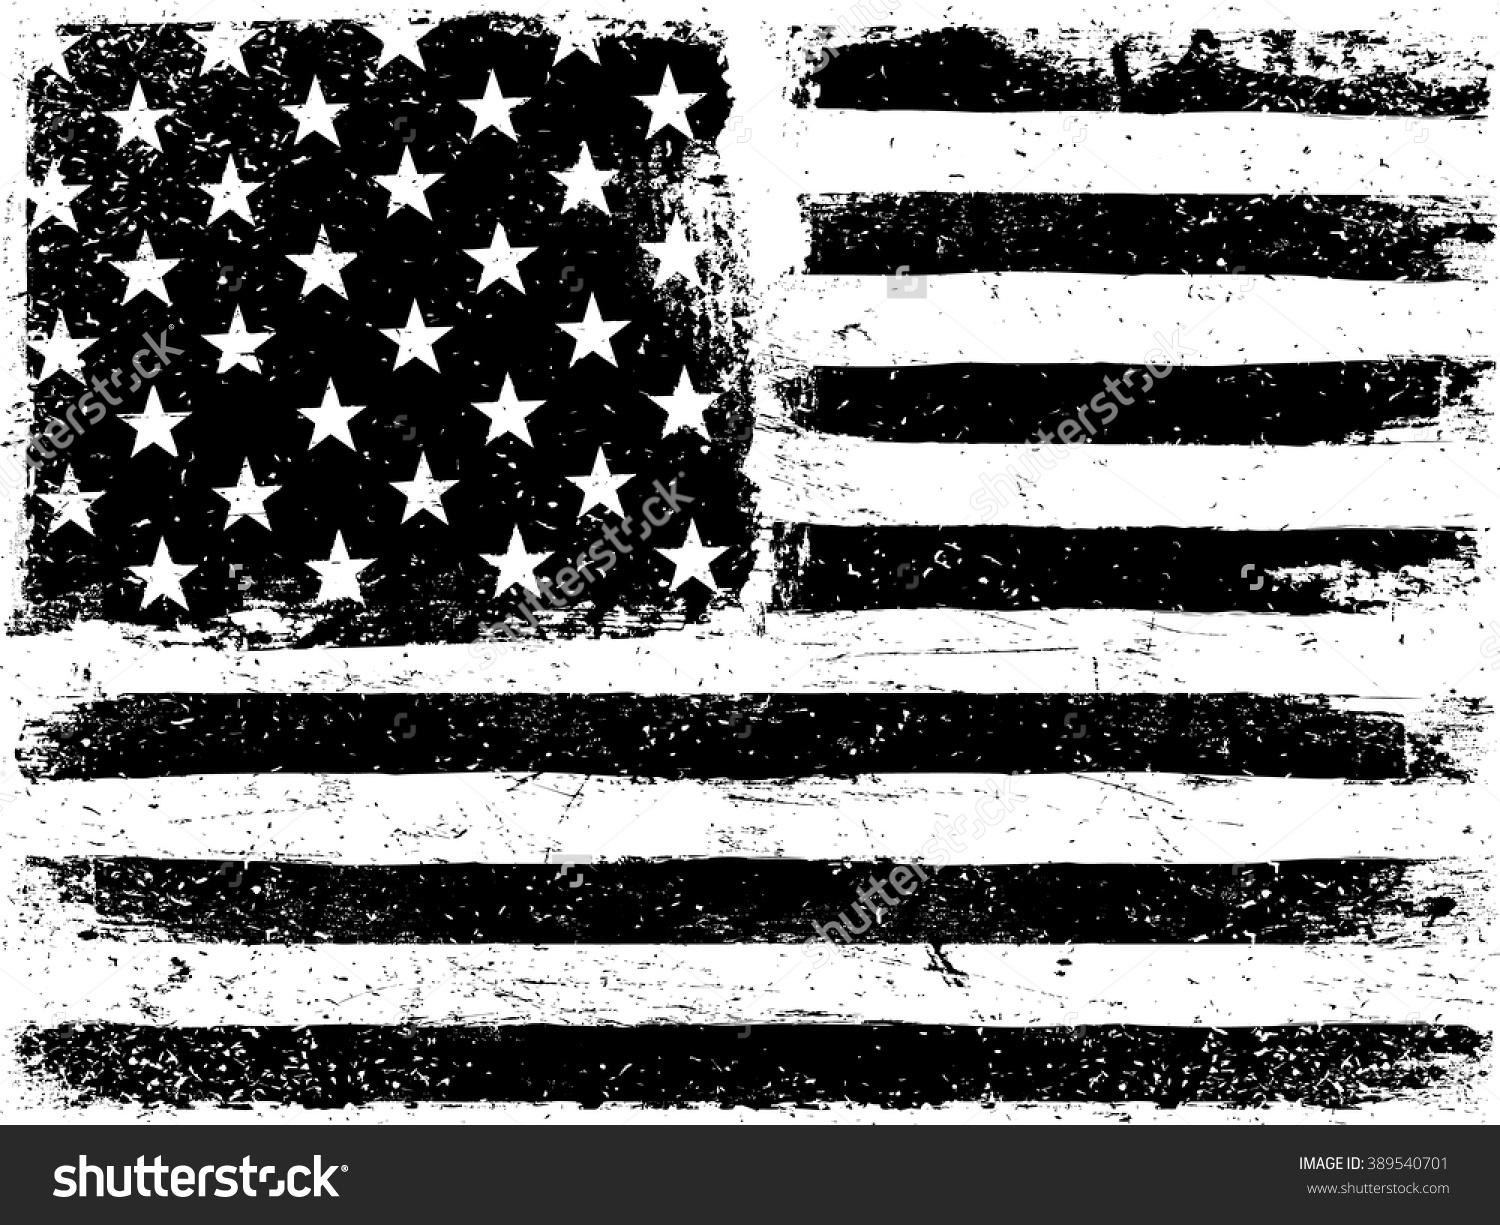 United states distressed flag clipart vector library stock United states distressed flag clipart black and white - ClipartFox vector library stock